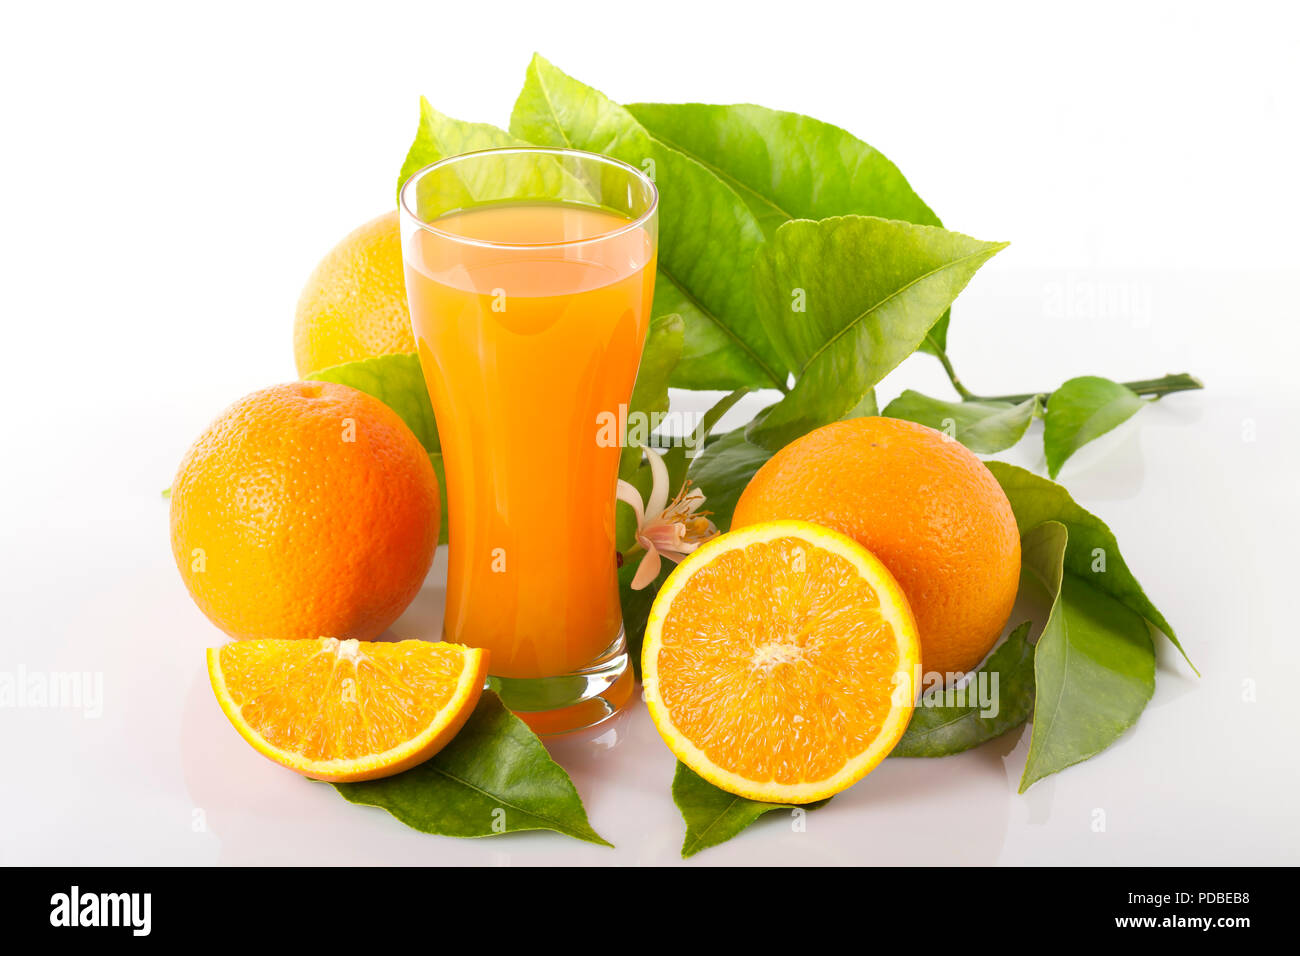 Oranges and orange tree leaves next to a glass full of orange juice isolated on white. - Stock Image